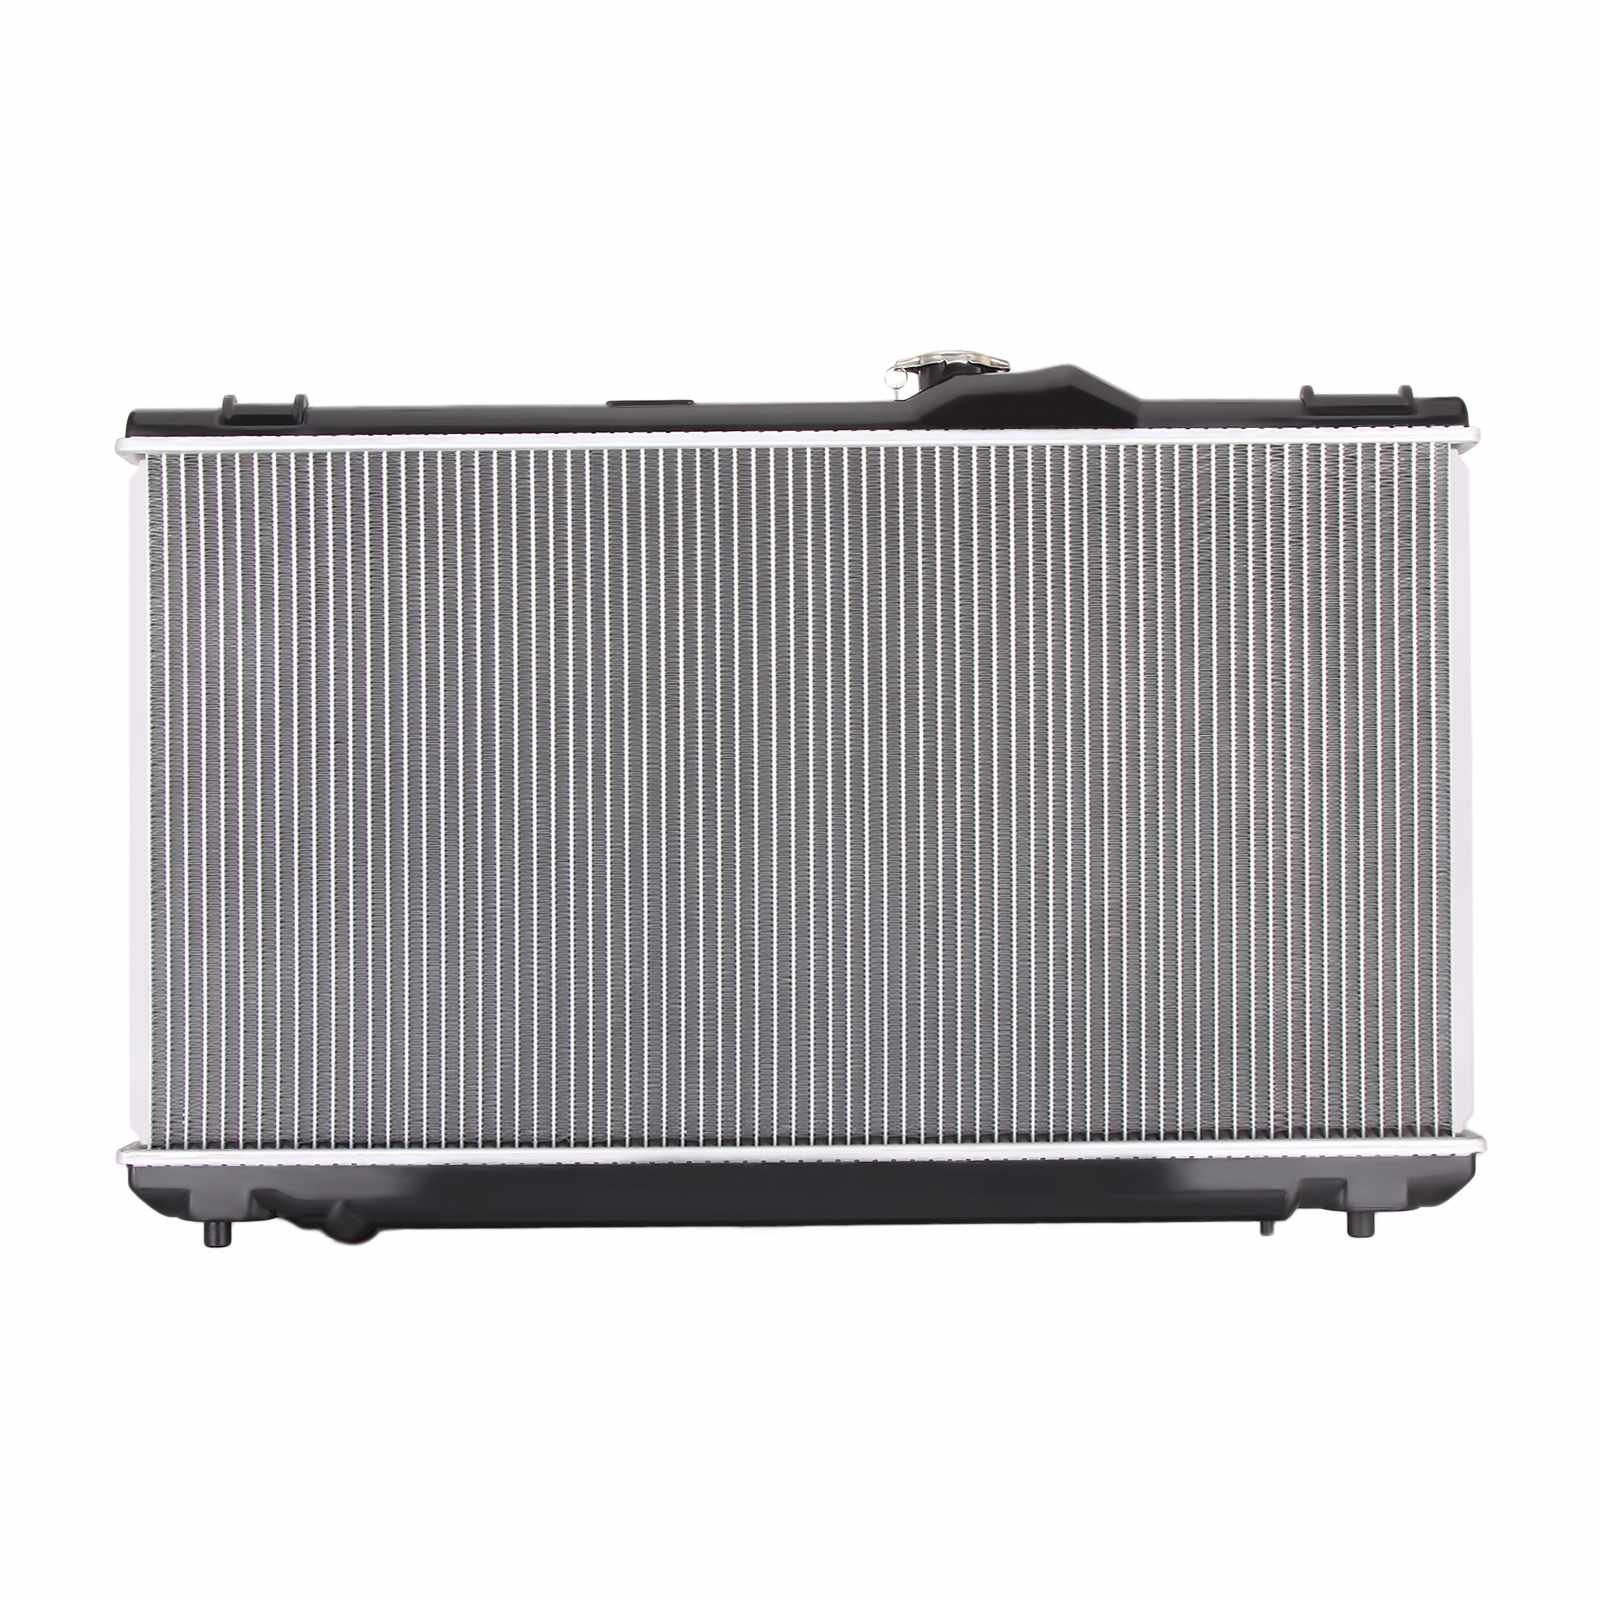 Dromedary Water Cooler Radiator For Lexus IS300 Toyota Altezza 3.0L Automatic/Manual 99-05 LEXUS RADIATOR image2